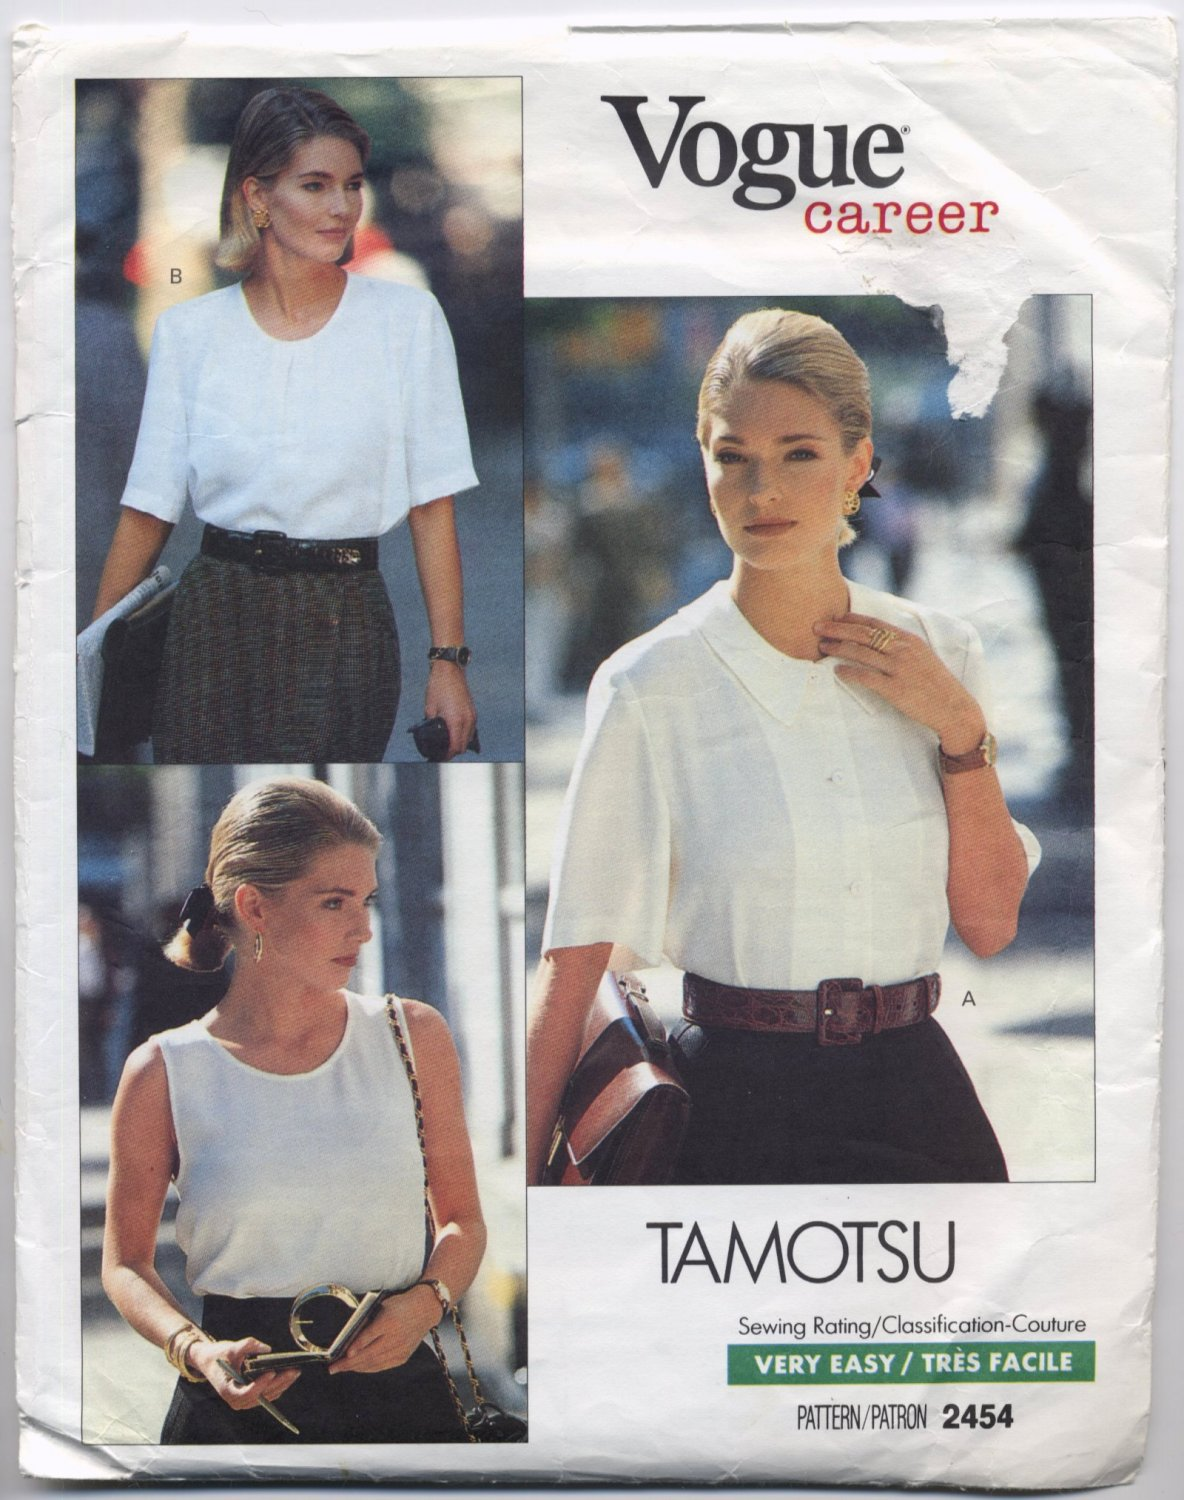 Vogue 2454 Top and Blouses Tamotsu Sewing Pattern Misses' 6 8 10 Office School Casual Weekend